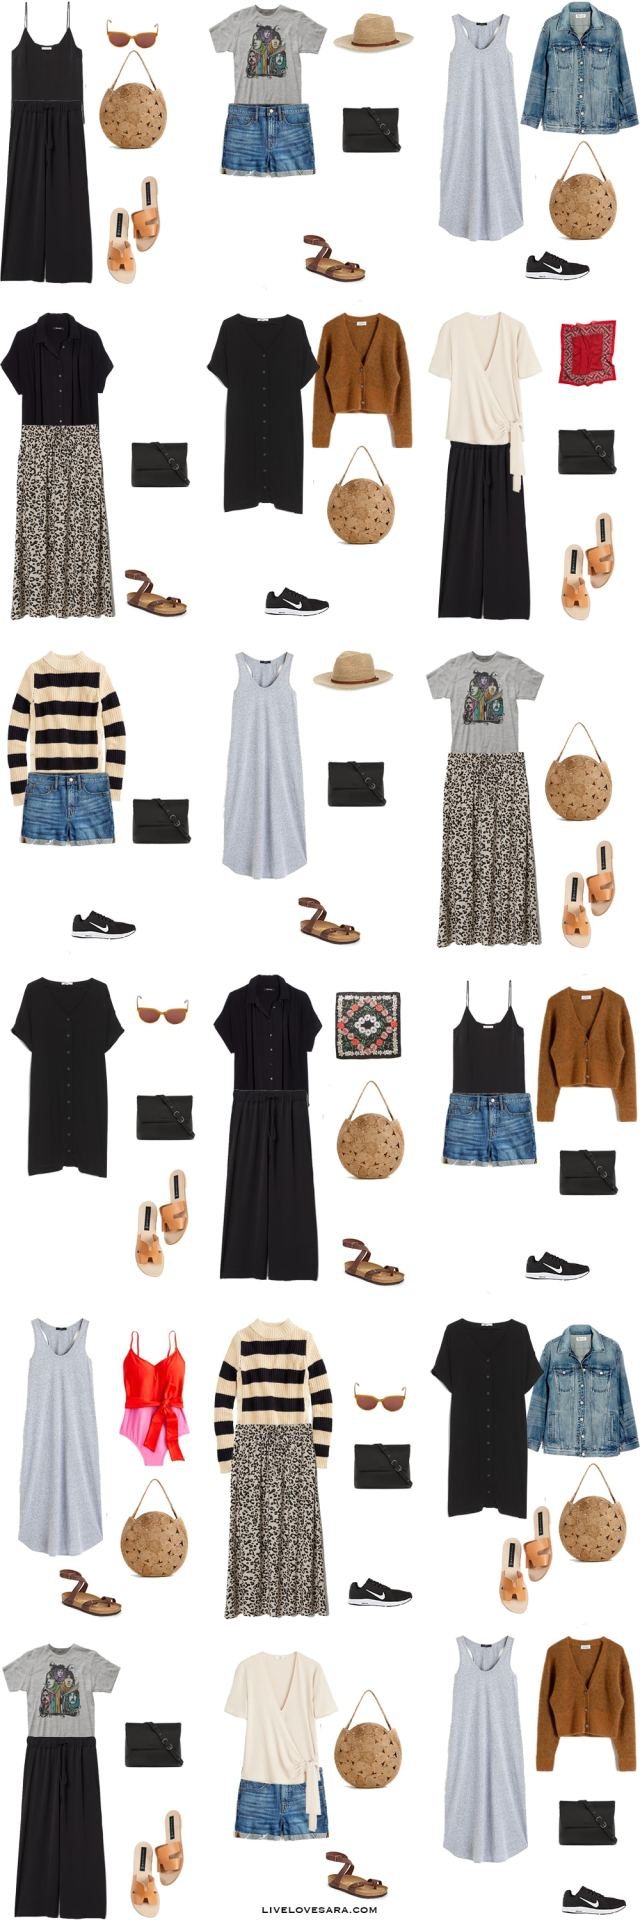 Are you wondering what to wear in Hawaii? I have a sample of a Hawaii packing list to help you on your way.Head over to my post for what to pack and outfit ideas. Hawaii Packing List | What to pack for Hawaii | #worldtravel #beachvacation #packinglight Packing Light | beach vacation | Travel Light | Travel Wardrobe | Travel Capsule | Capsule | Pack for vacation #travellight #packinglight #travelcapsule #capsulewardrobe #capsule